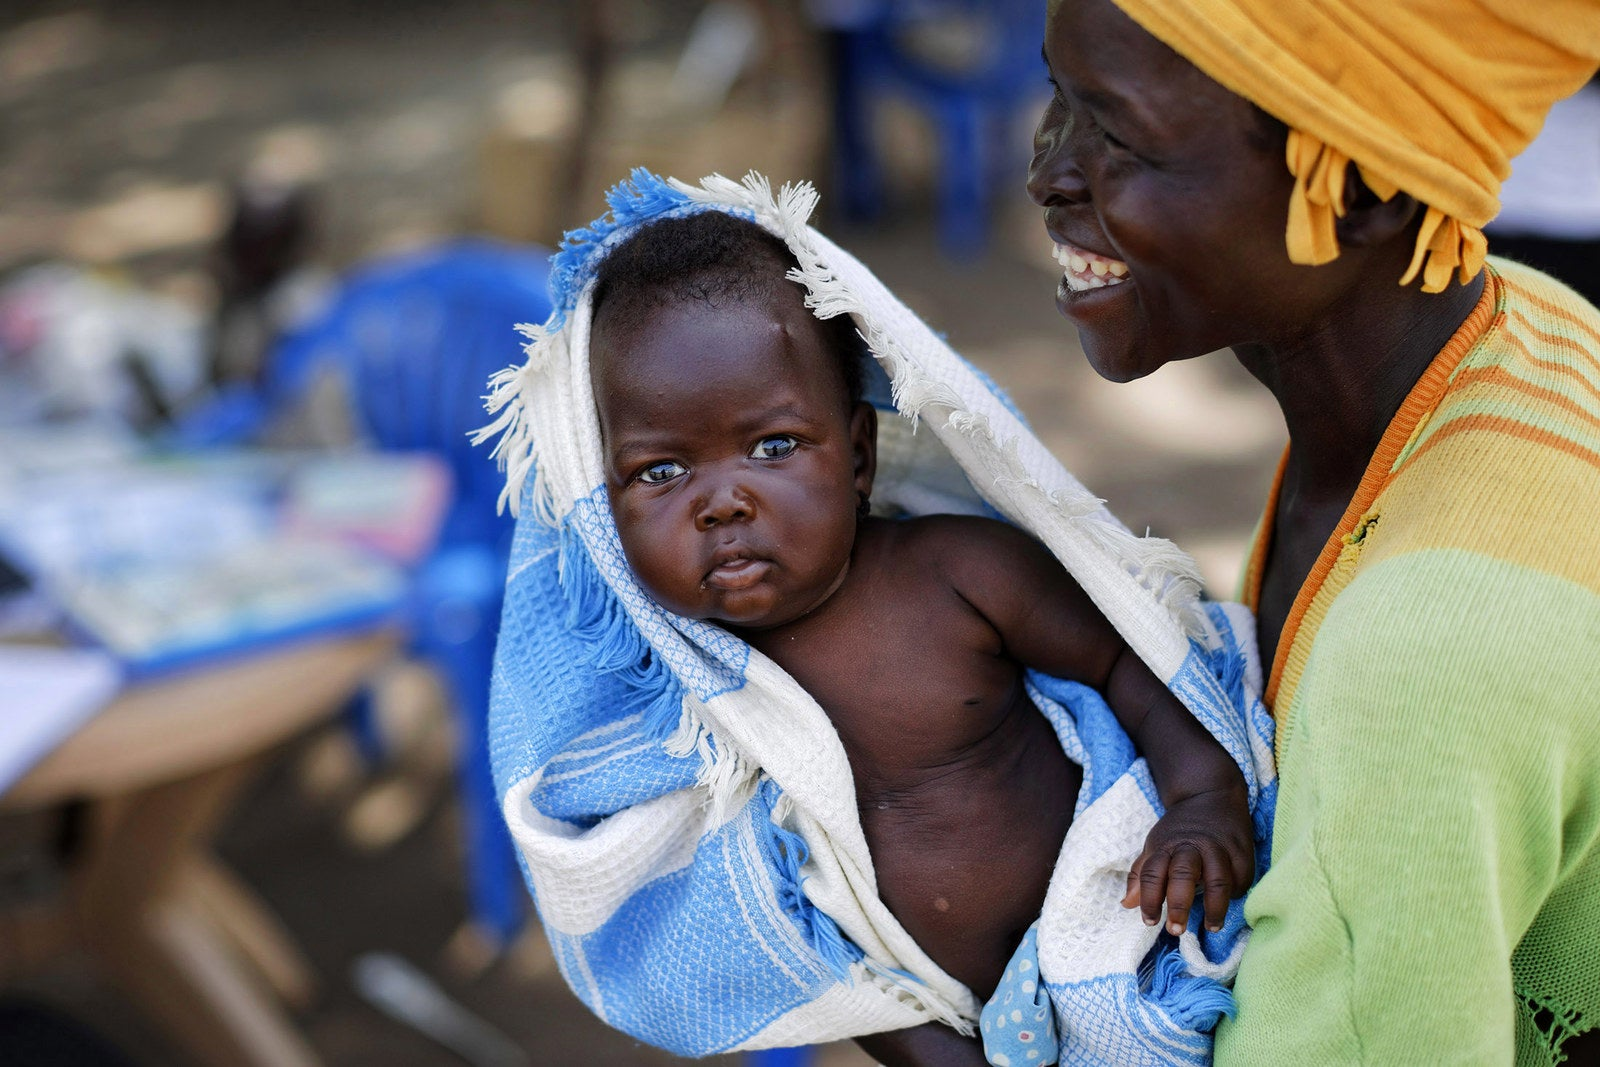 South Sudanese refugee Betty Sakala, from Central Equatoria state, laughs after being shown a photo of her daughter Mary, 2 months, as she waits to have Mary examined at a mobile health clinic run by the International Rescue Committee, in Bidi Bidi, Uganda, on June 5.